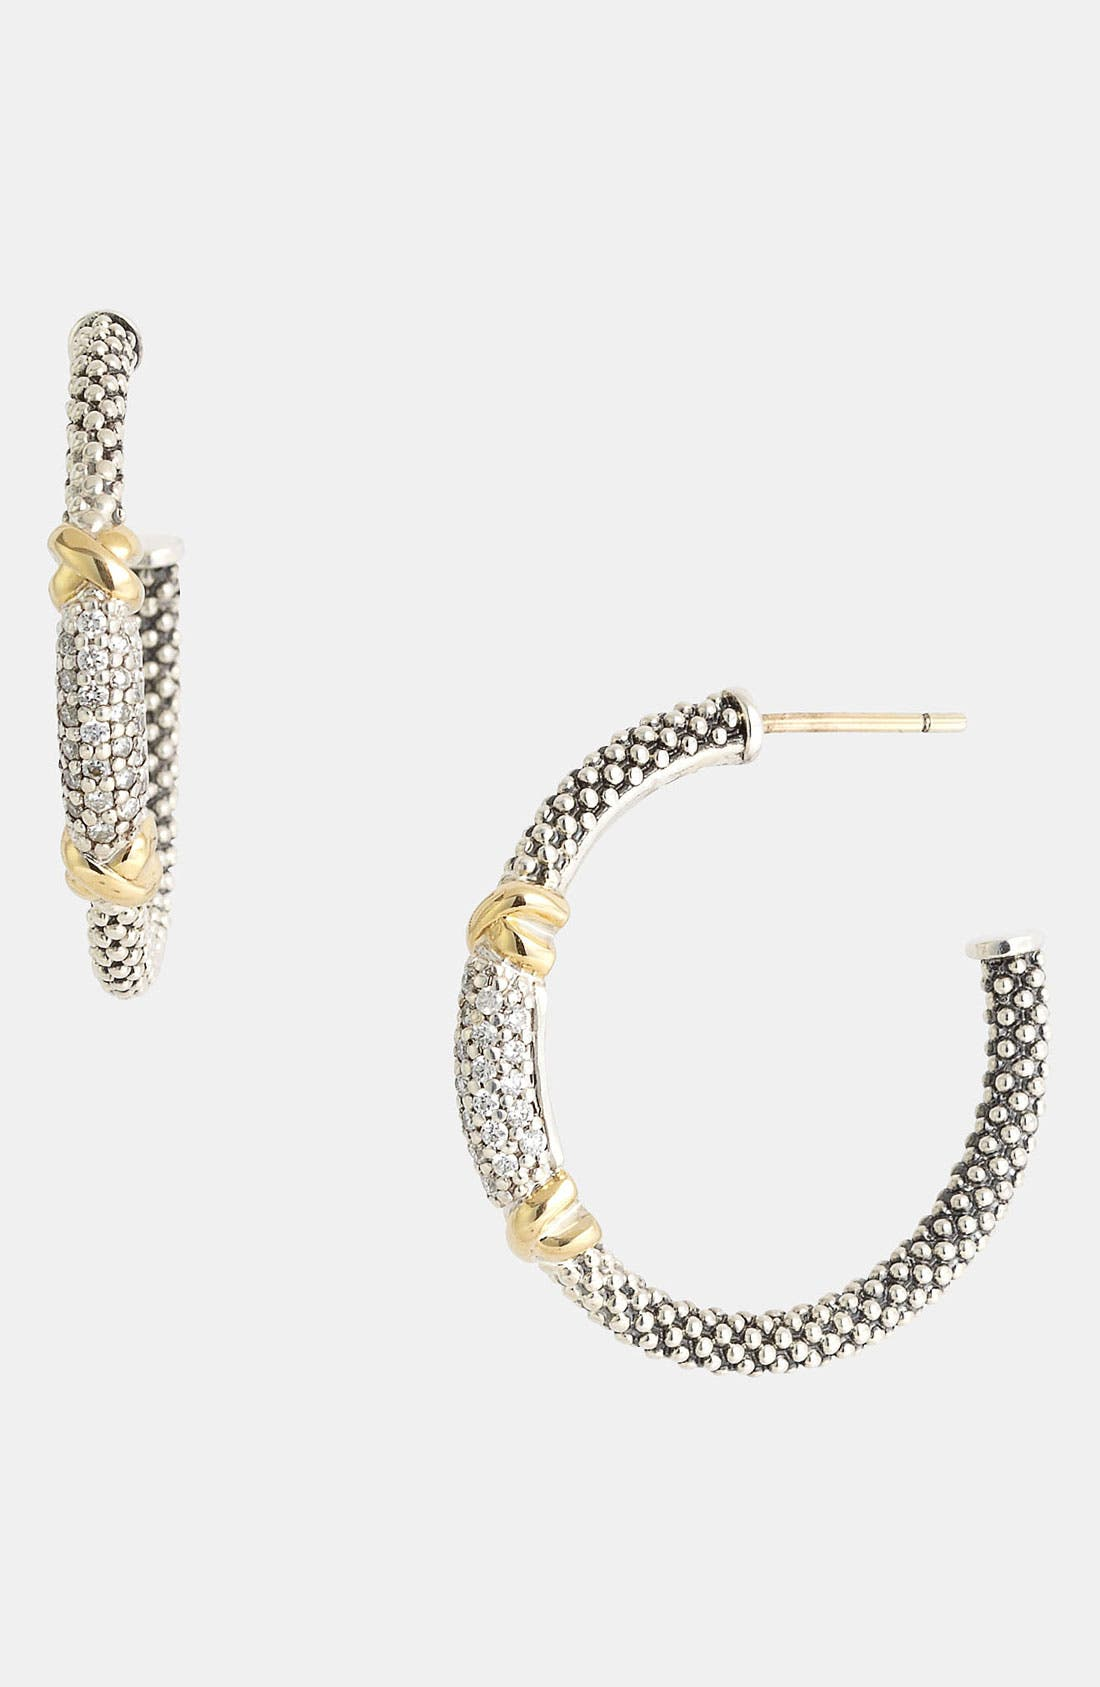 Alternate Image 1 Selected - Lagos 'X' Large Diamond & Caviar™ Hoop Earrings